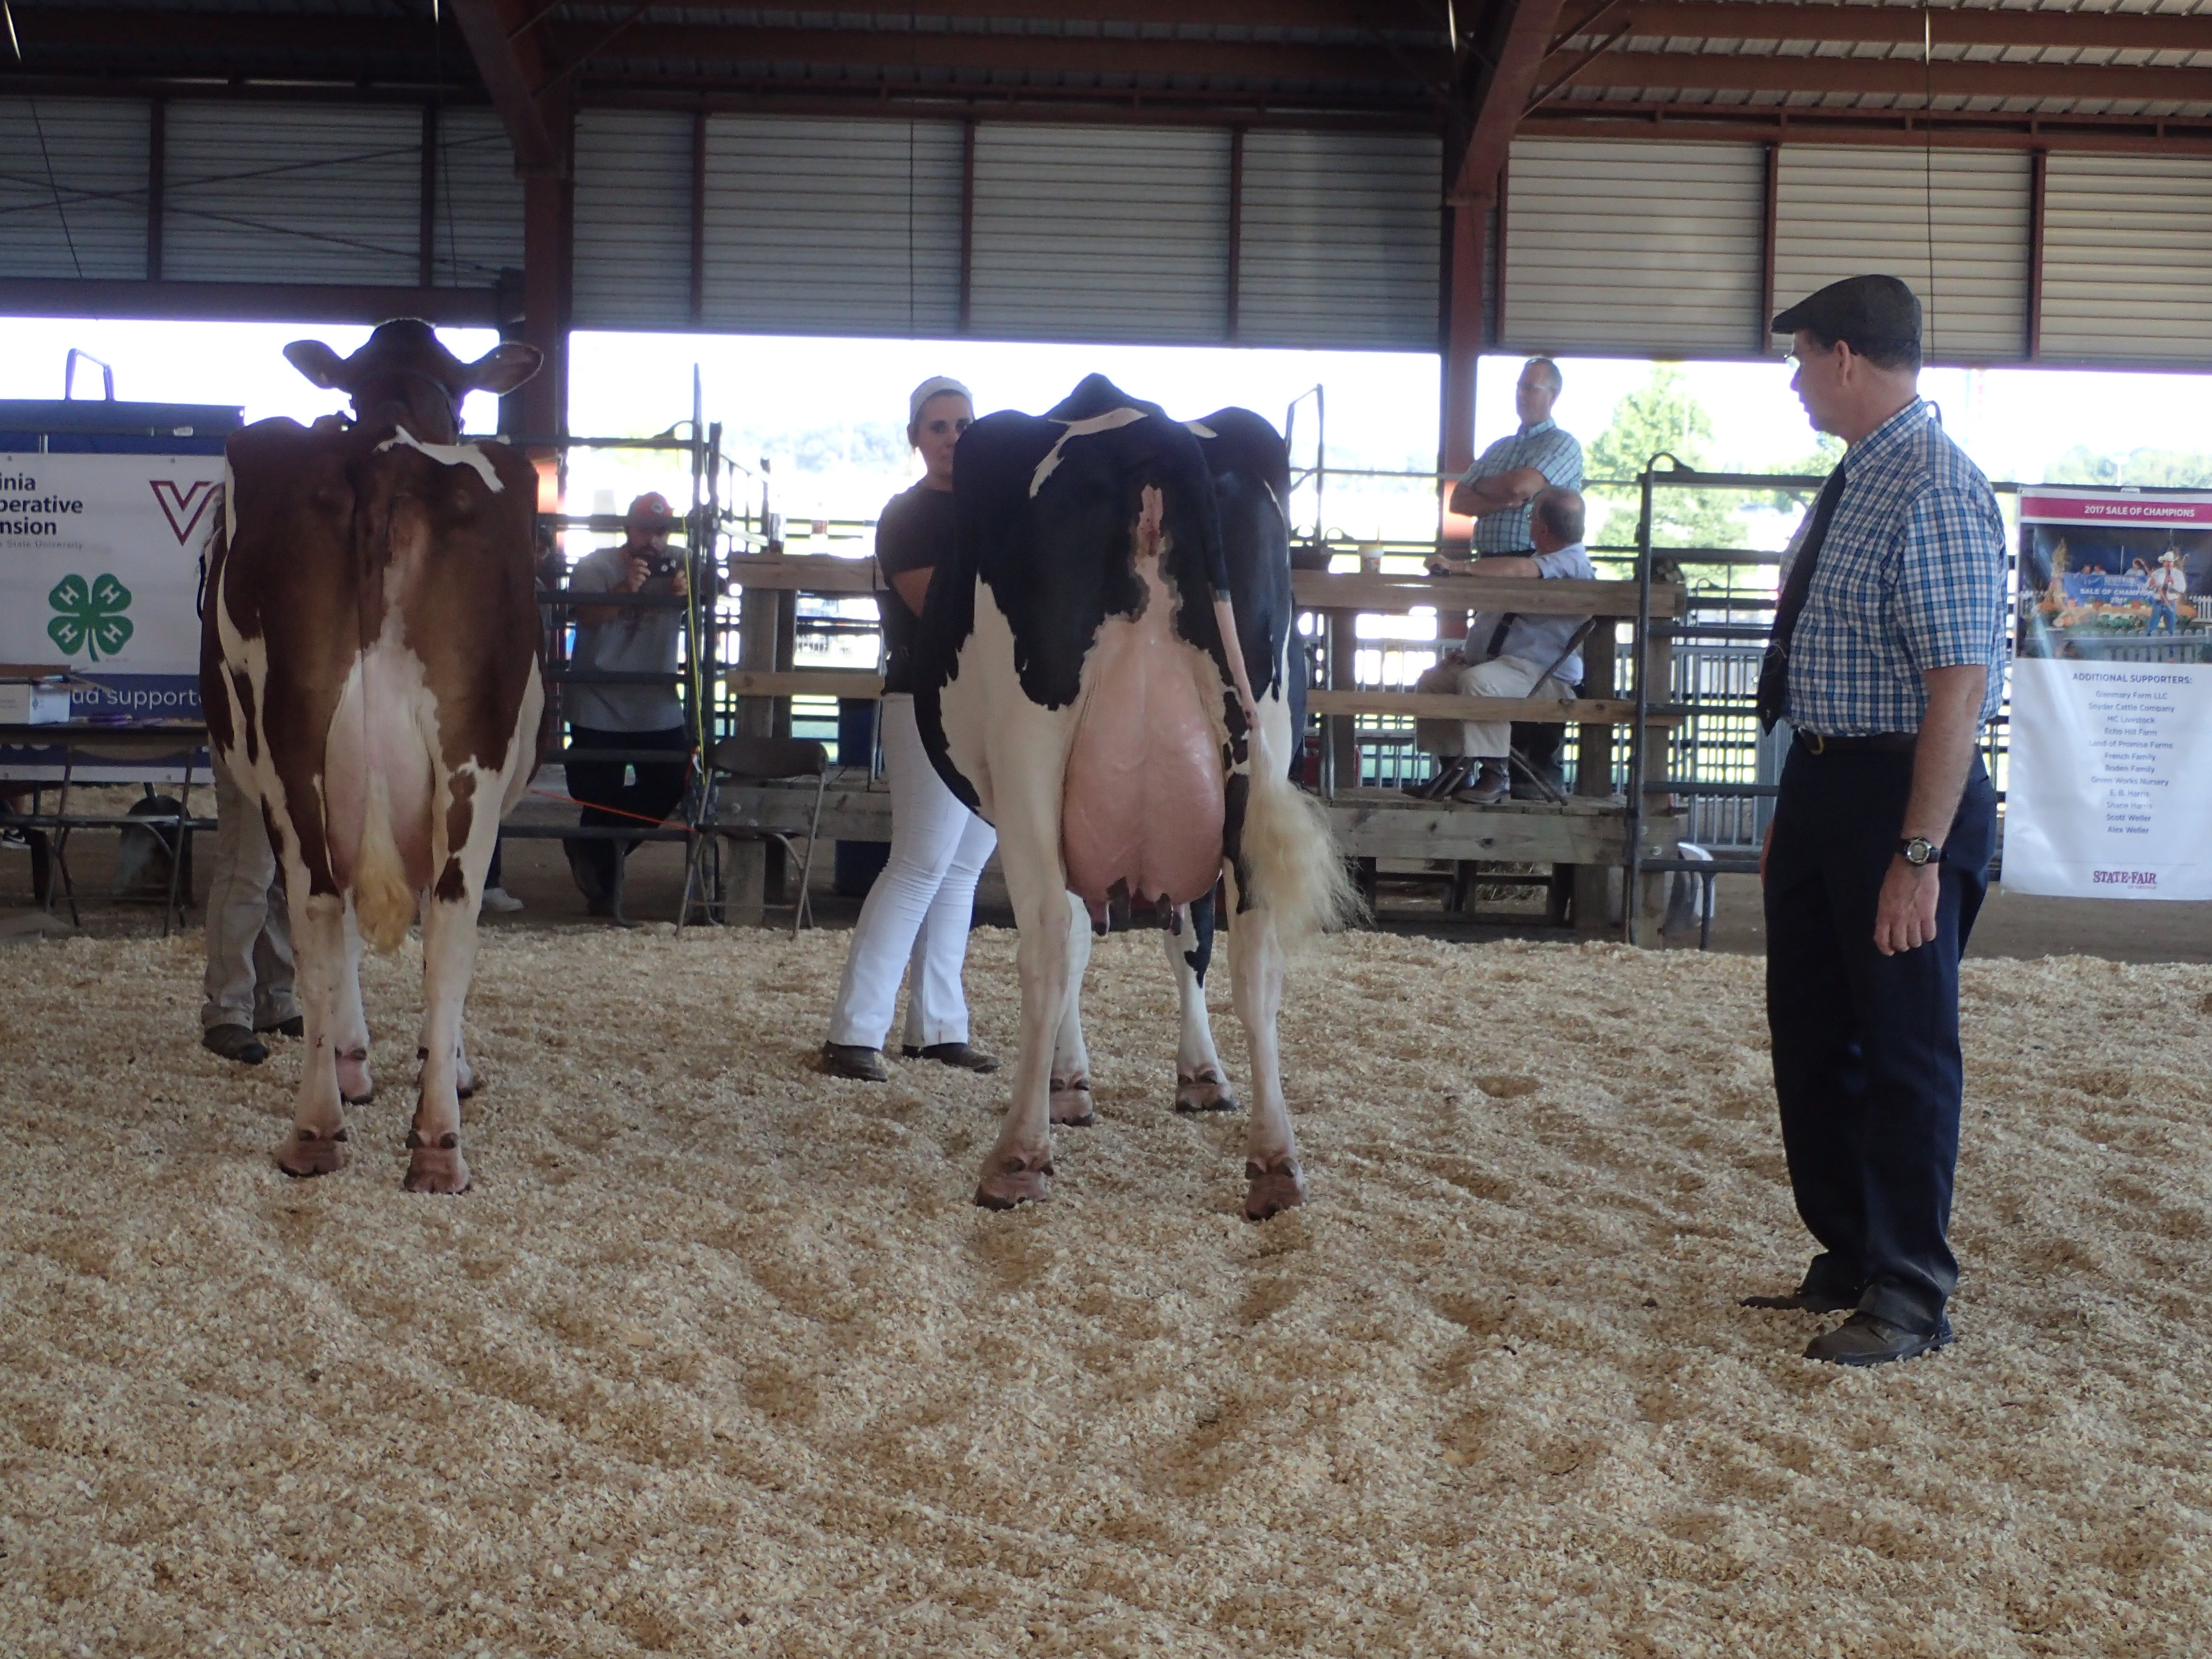 Udder height, in relation to the hock and rear Udder attachment are critical to evaluate